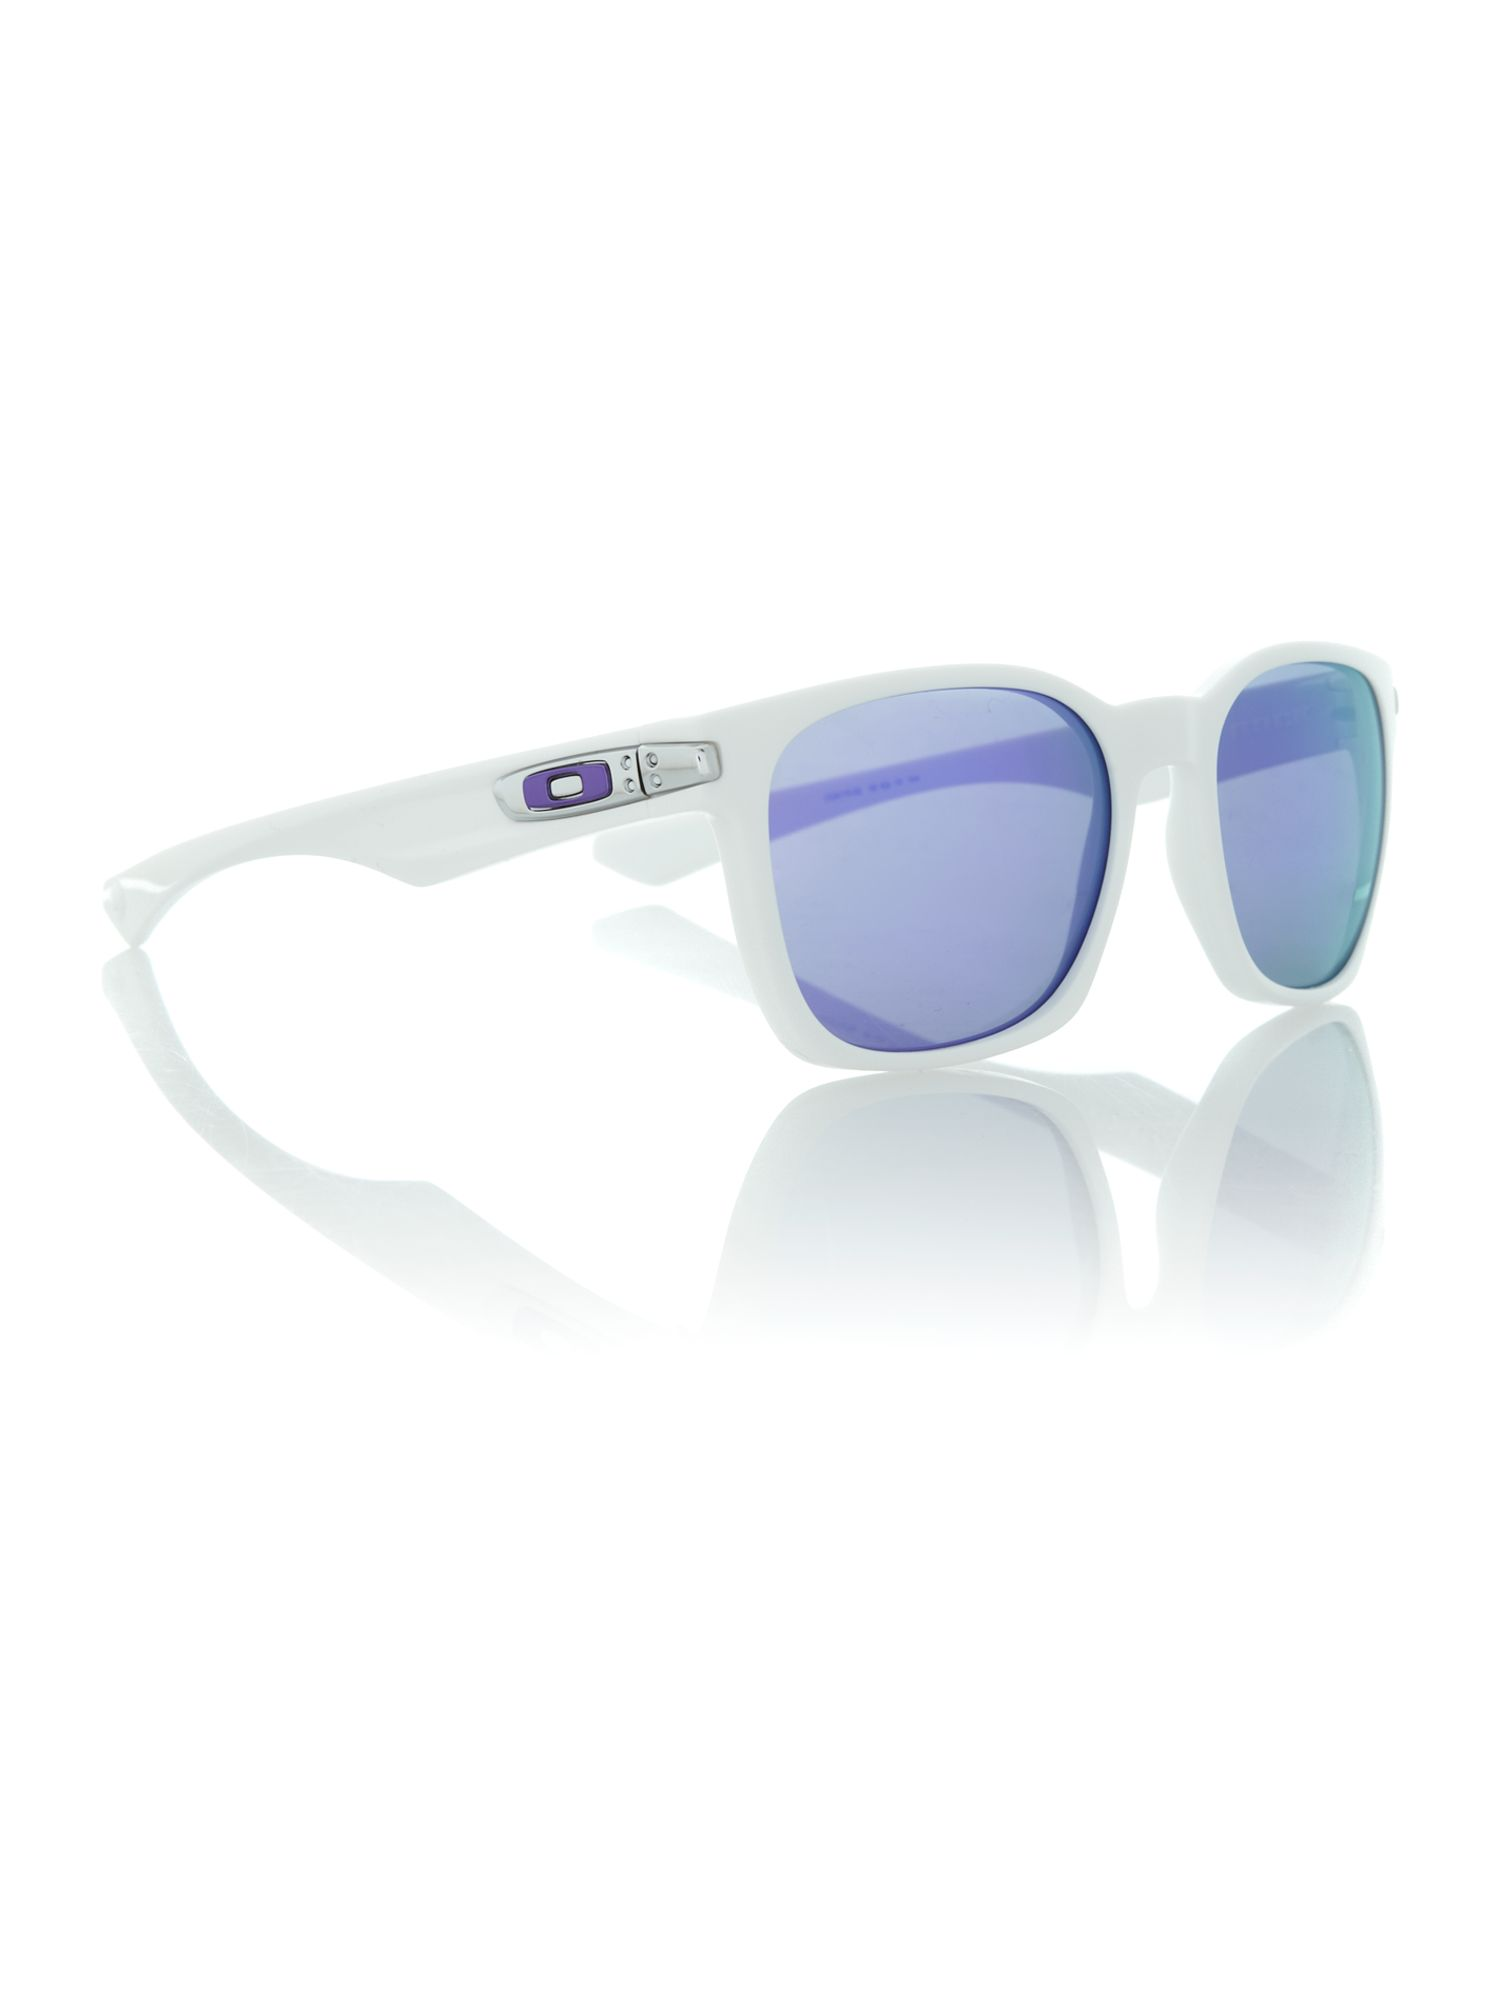 Men`s OO9175 white square sunglasses